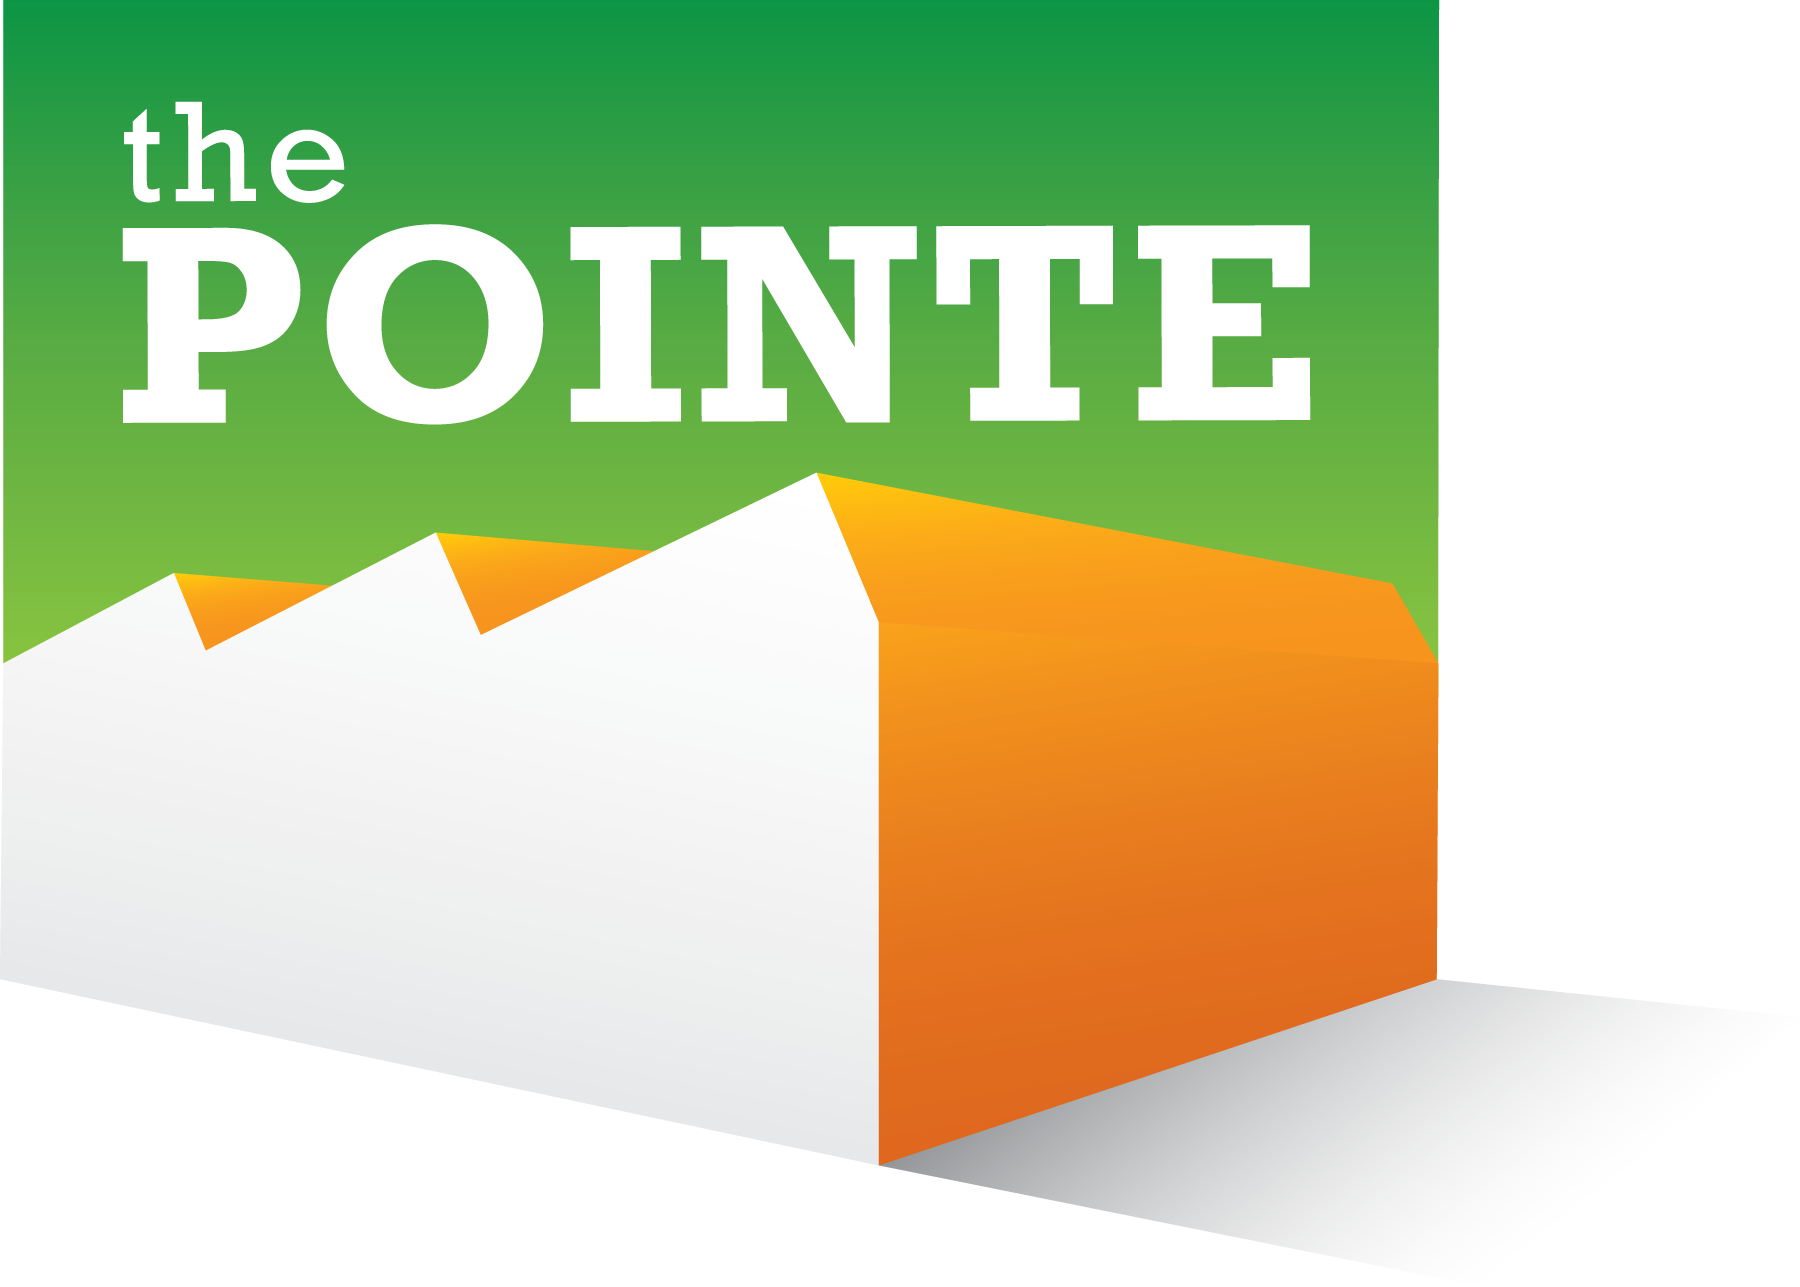 thePointe.png